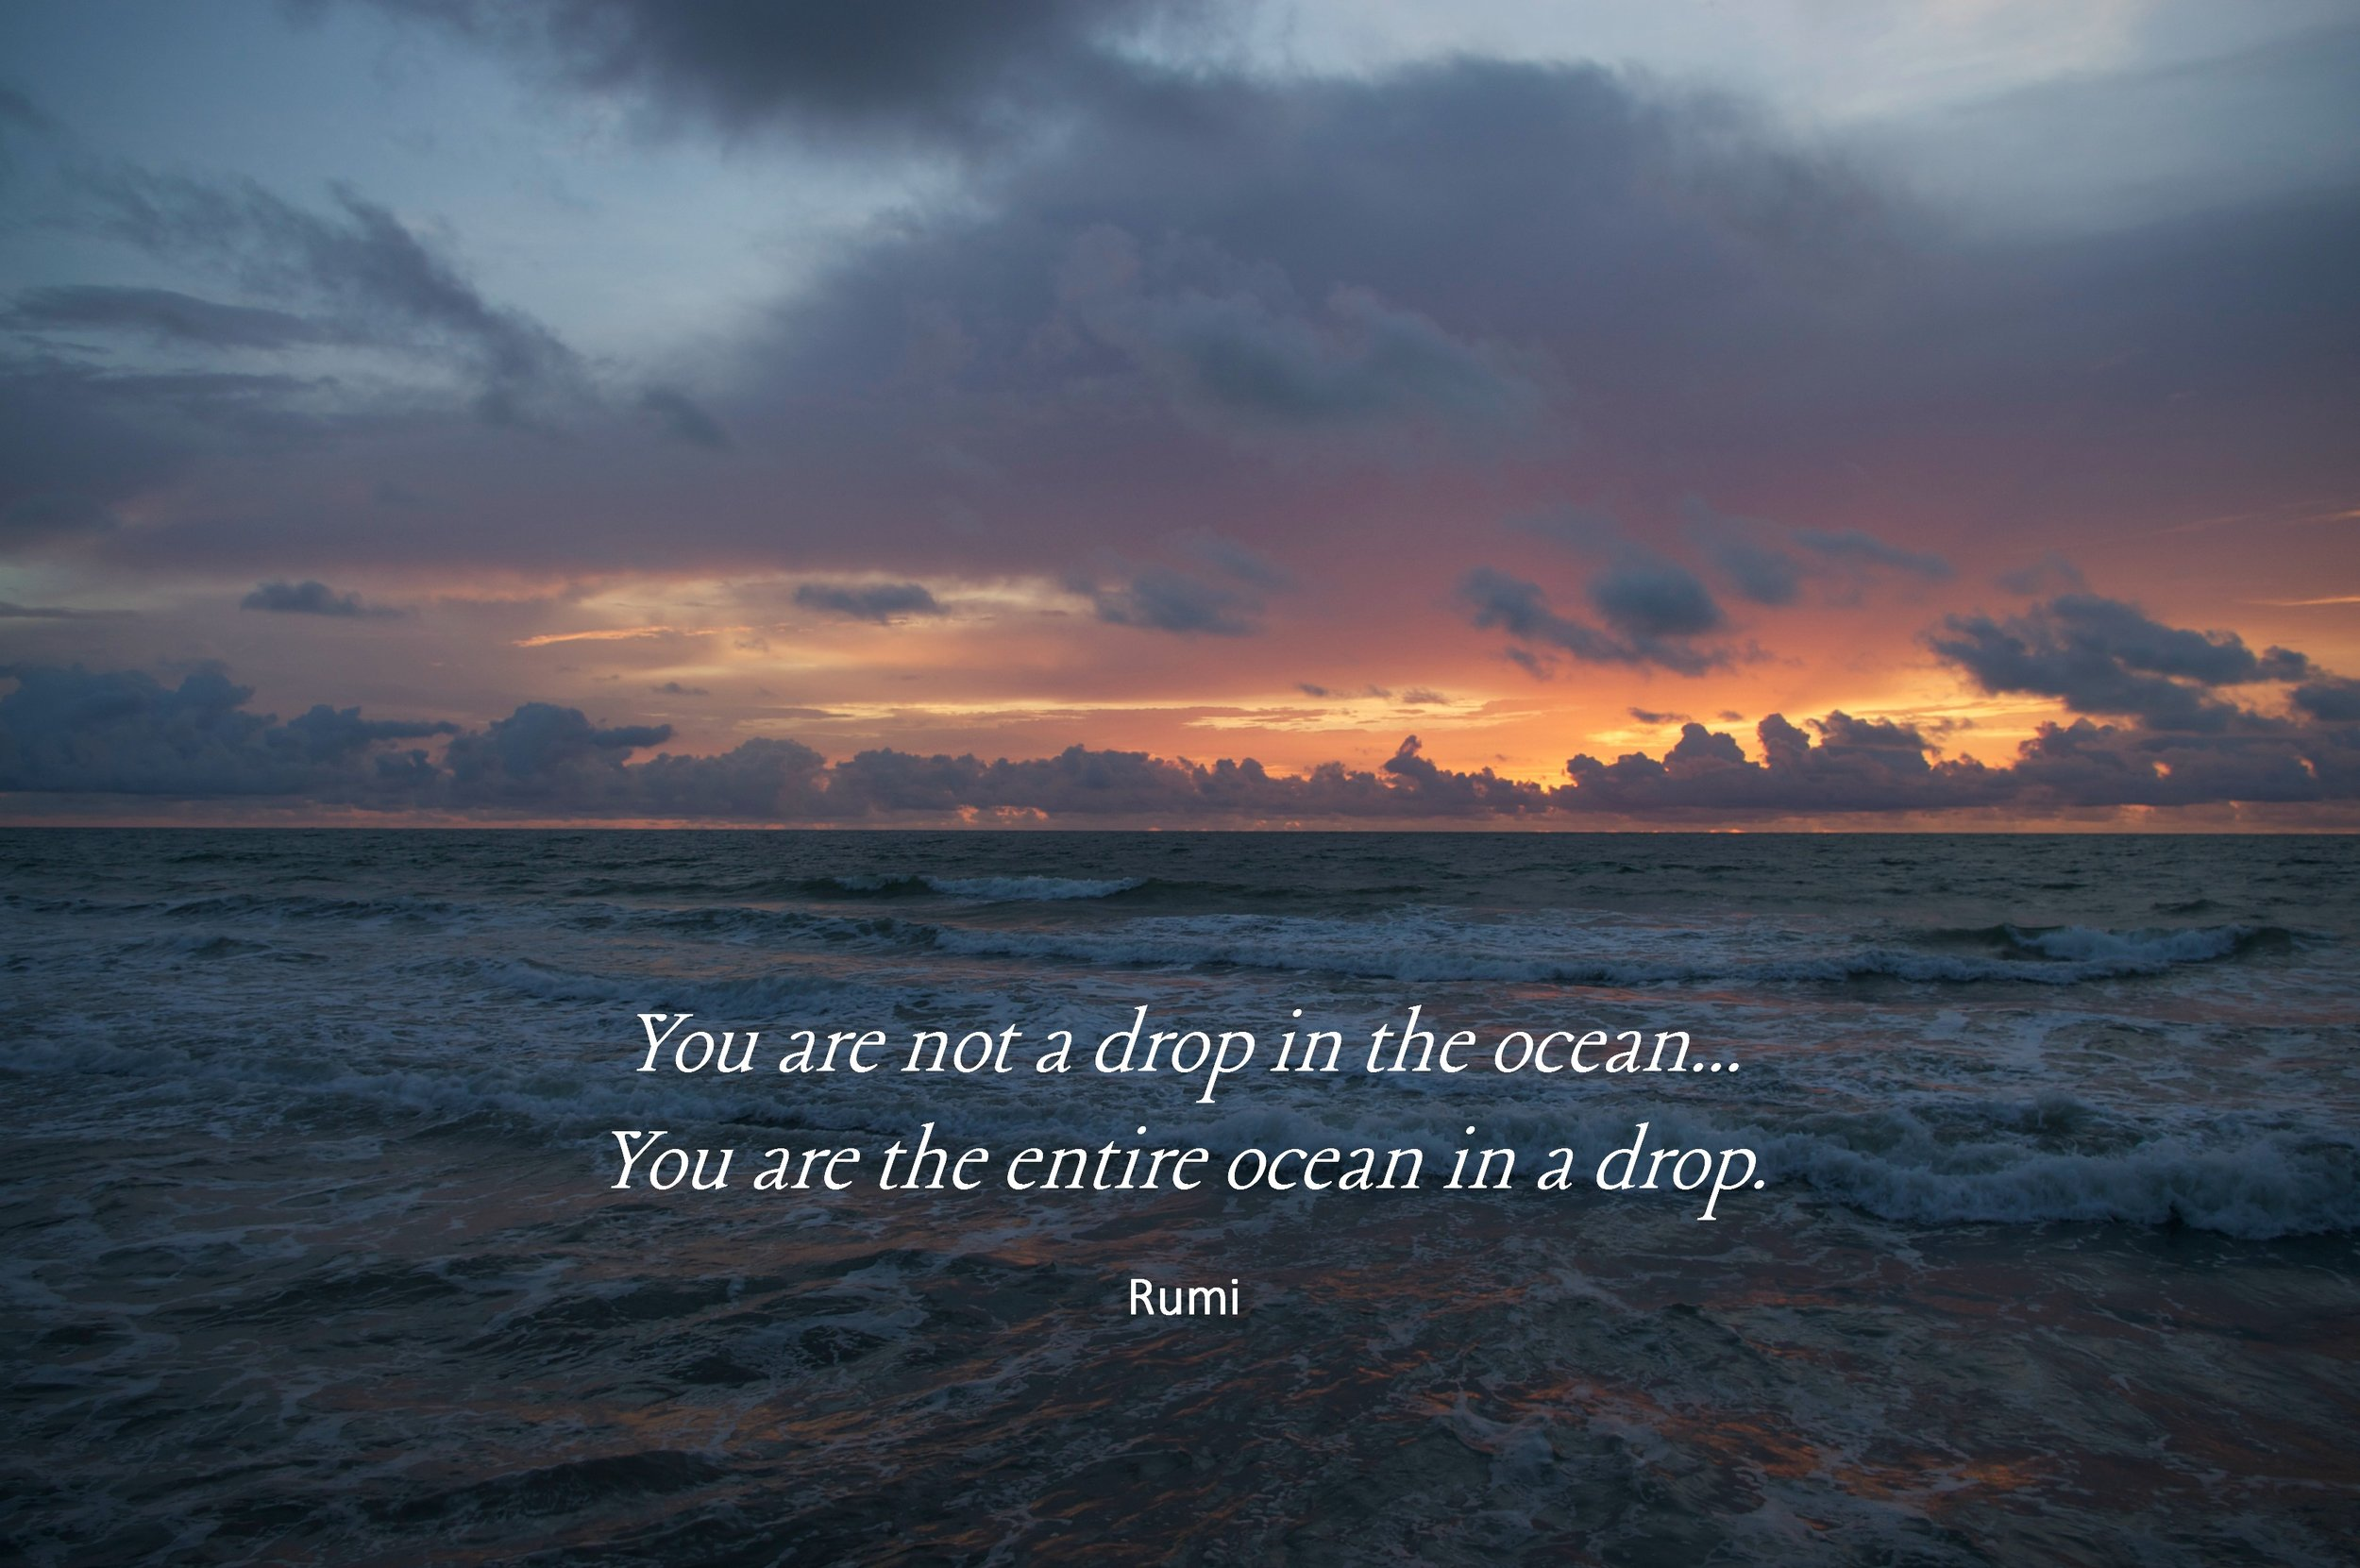 You are not a drop in the ocean... you are the entire ocean in a drop. Rumi. Circle of Daydreams. www.circleofdaydreams.com